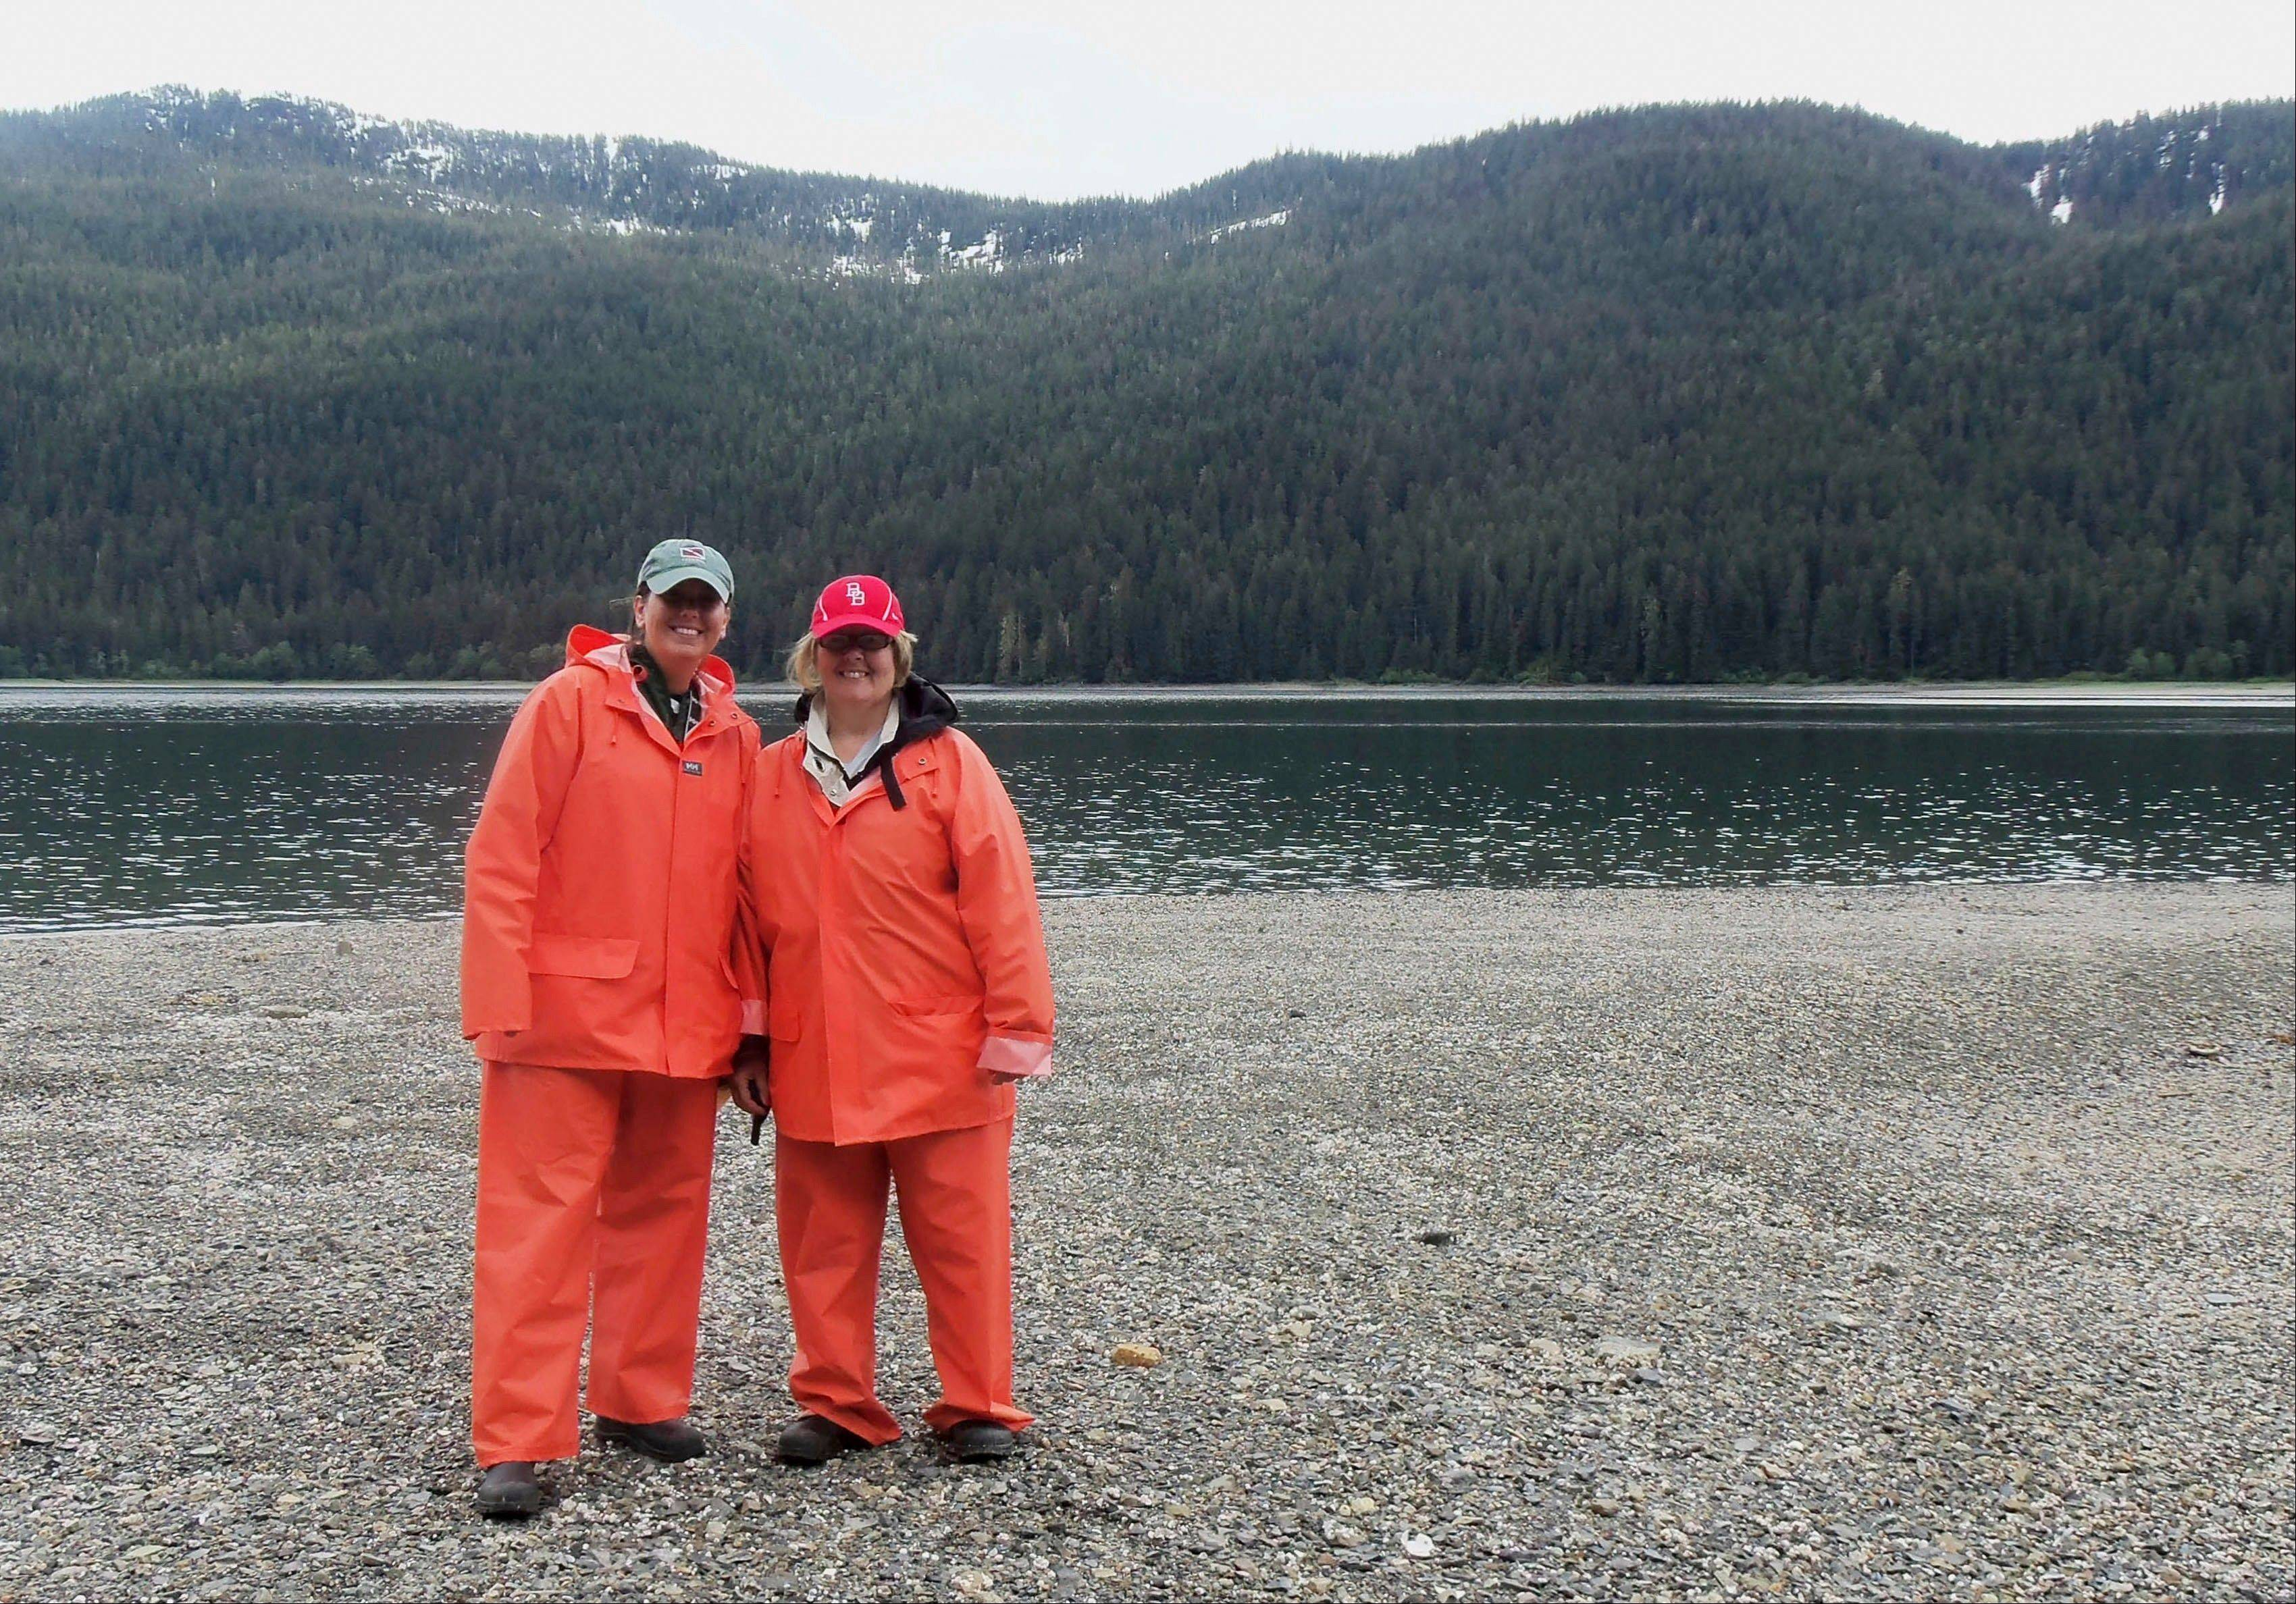 Teachers Kristi Mullinix, right, and Teri Moore, from South Shores School in Decatur, Ill., are seen on Admiralty Island, Alaska, during a wilderness trip funded with a grant from Archer Daniels Midland Co. The idea of the trip was to give teachers a firsthand experience with brown bears and provide material for lessons for their students.